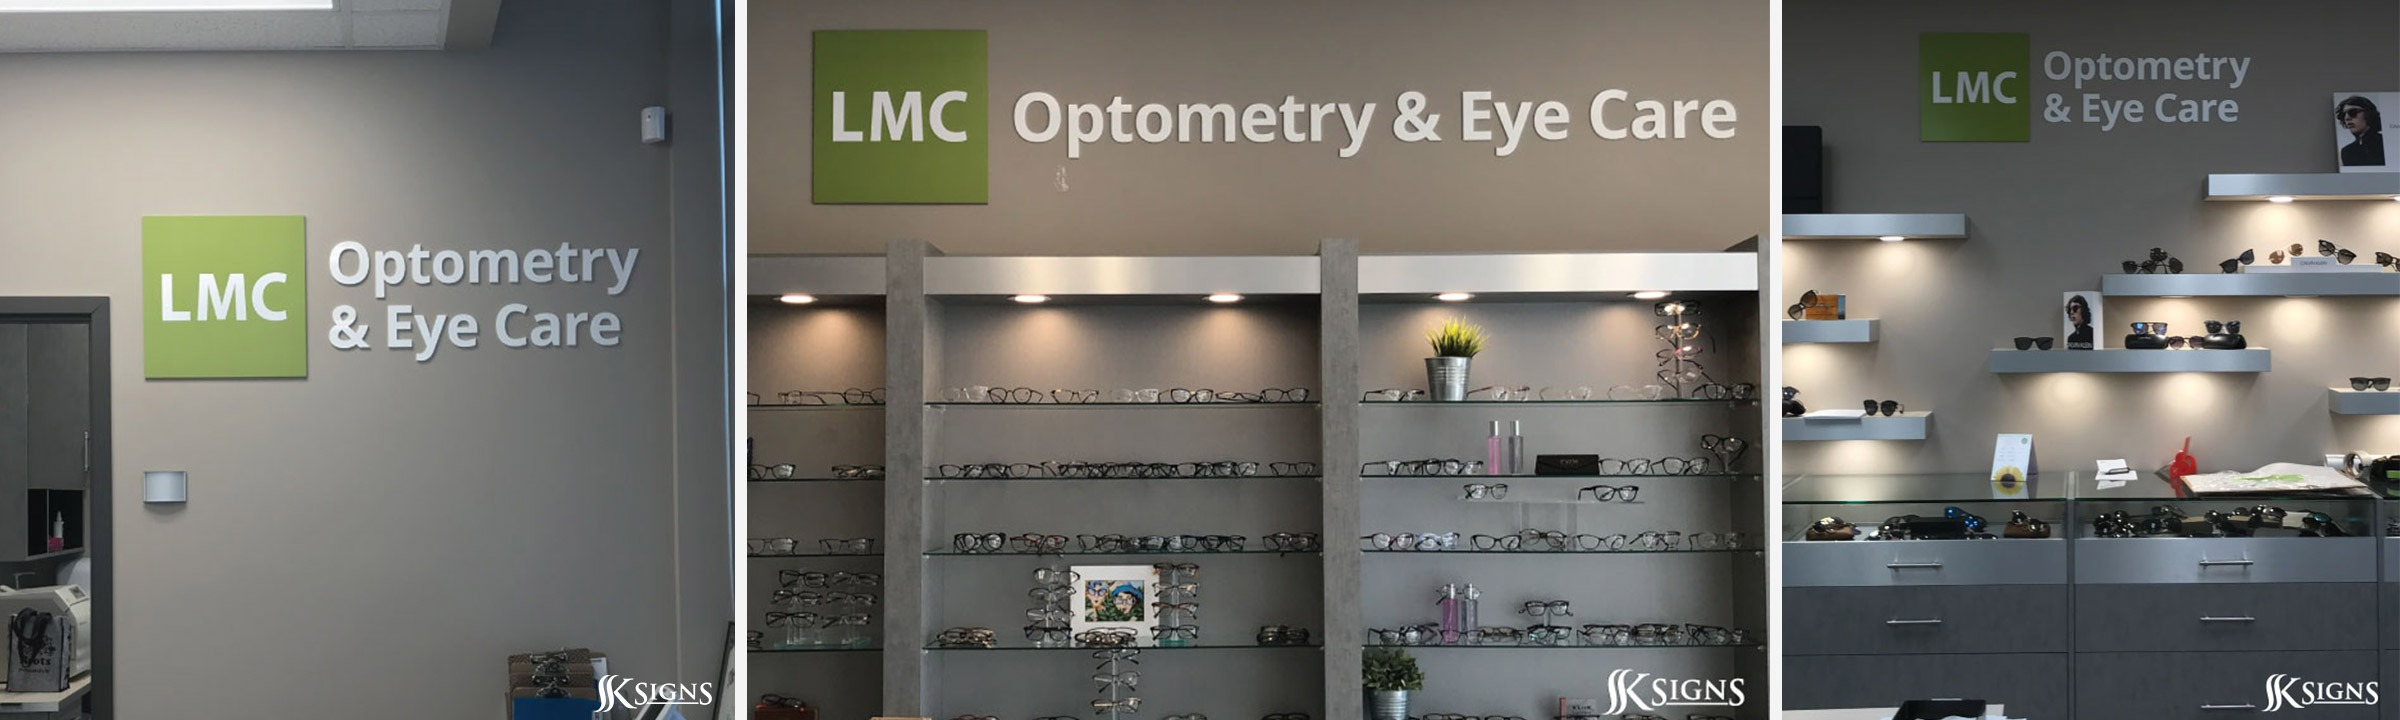 LMC Optometry Eye Care